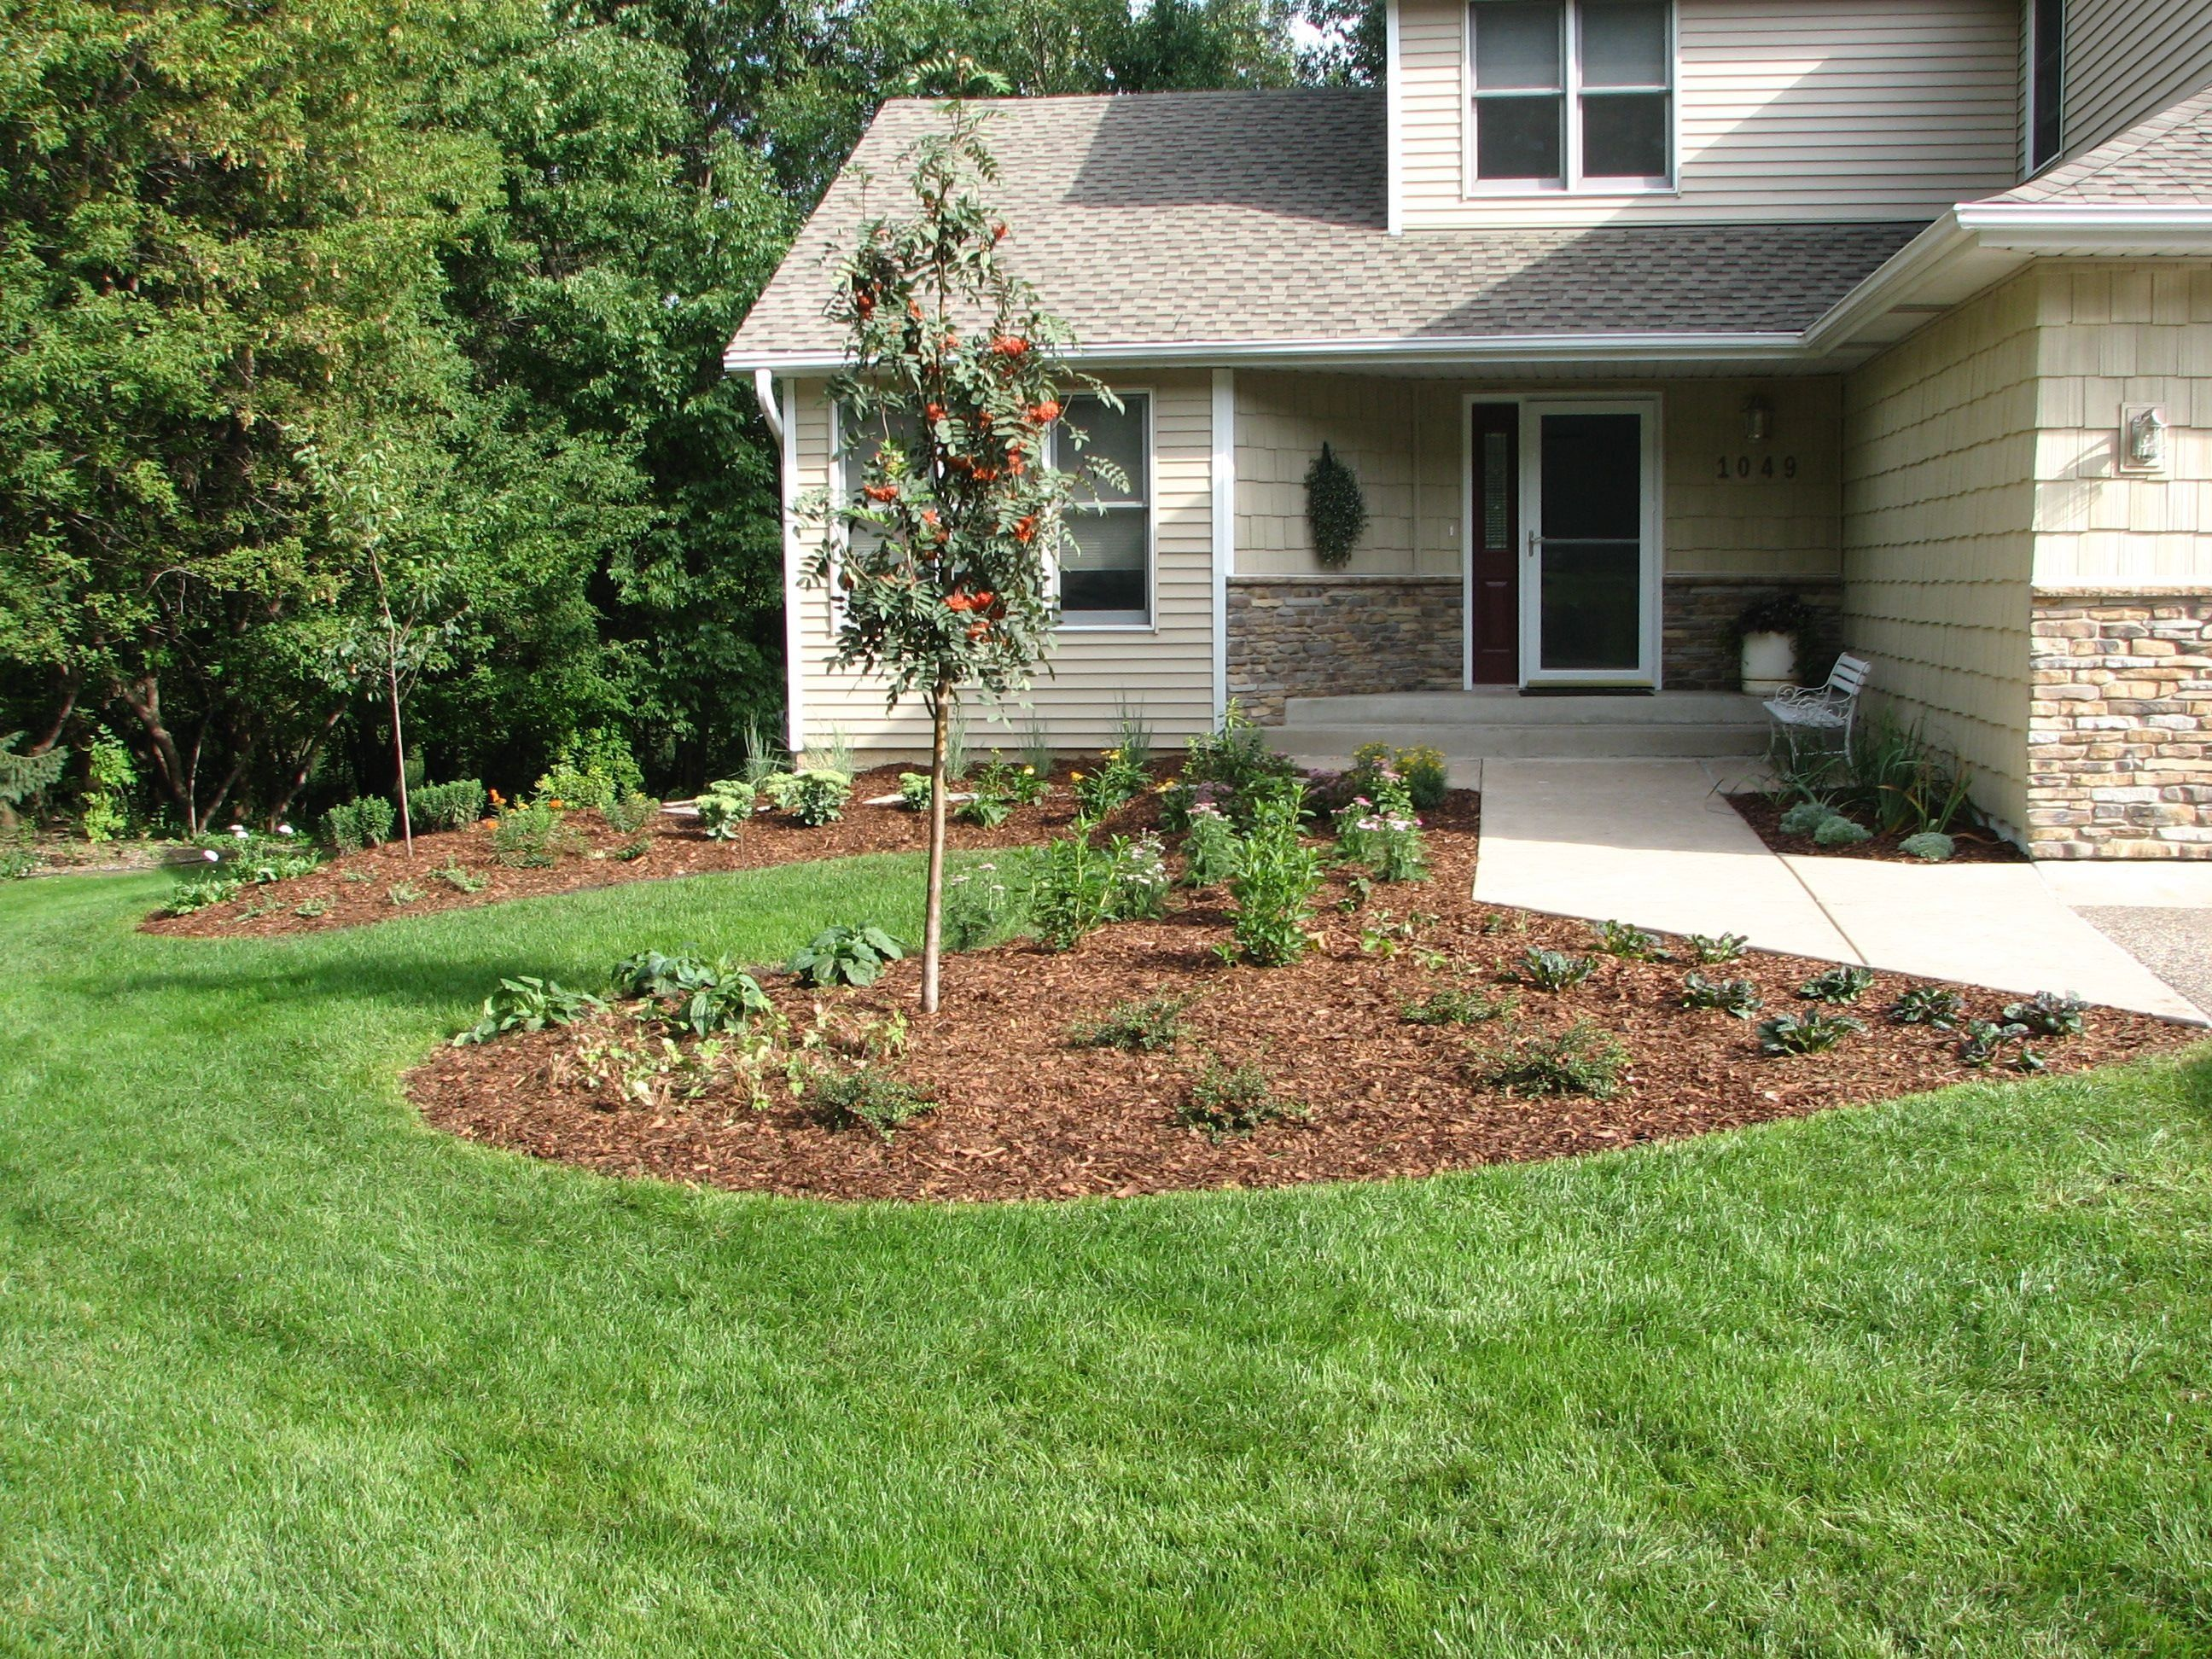 Ecoscapes Sustainable Landscaping Landscape Design Build Contractor Serving Minneapo In 2020 Front Yard Landscaping Design Home Landscaping Sustainable Landscaping